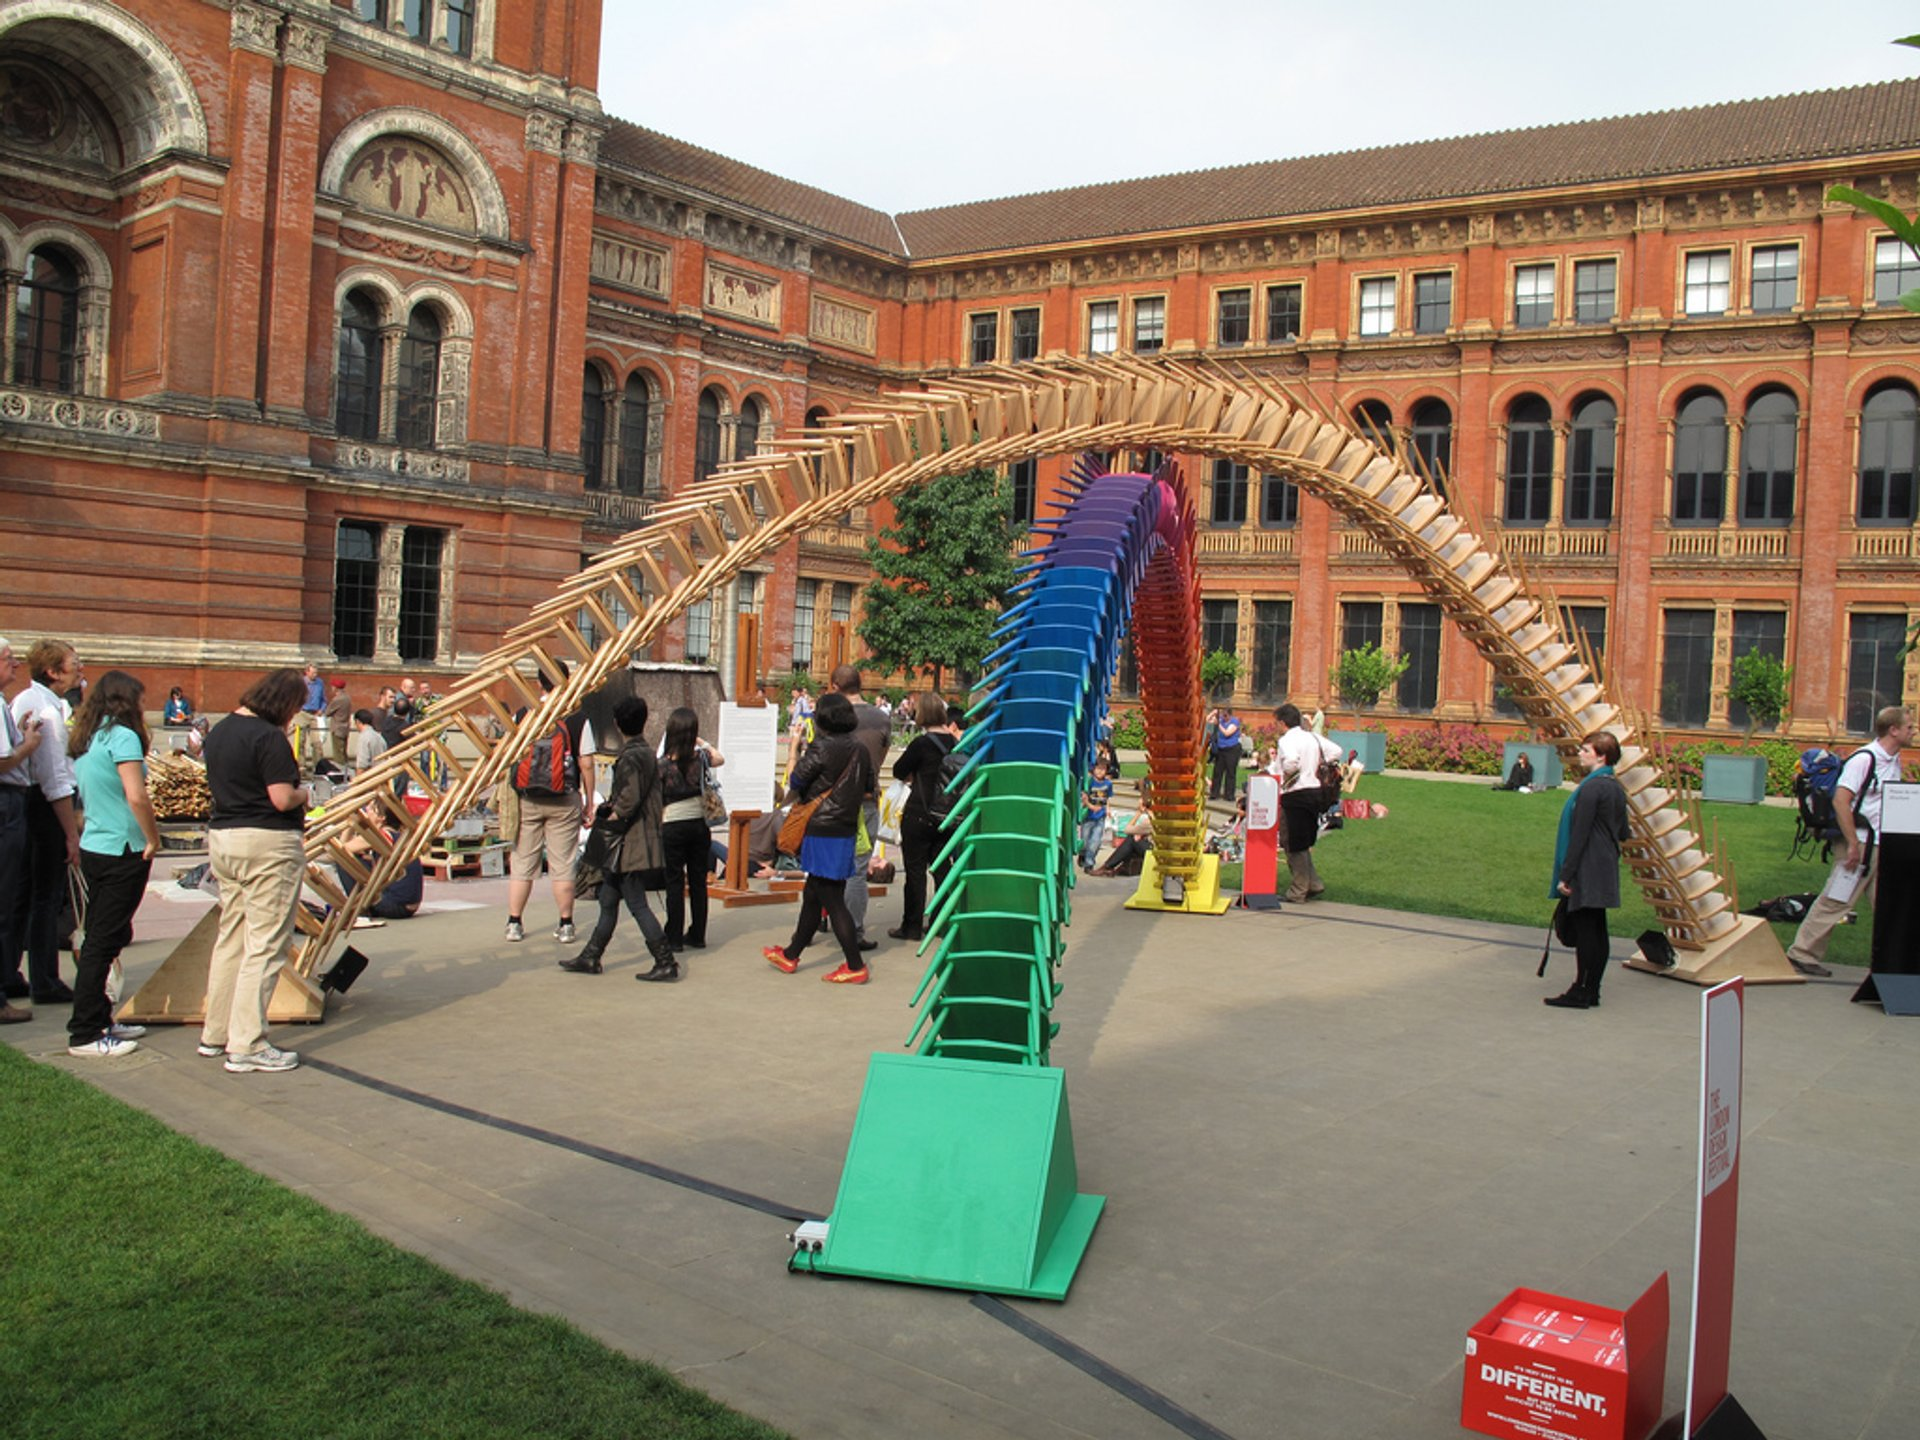 Best time to see The London Design Festival in London